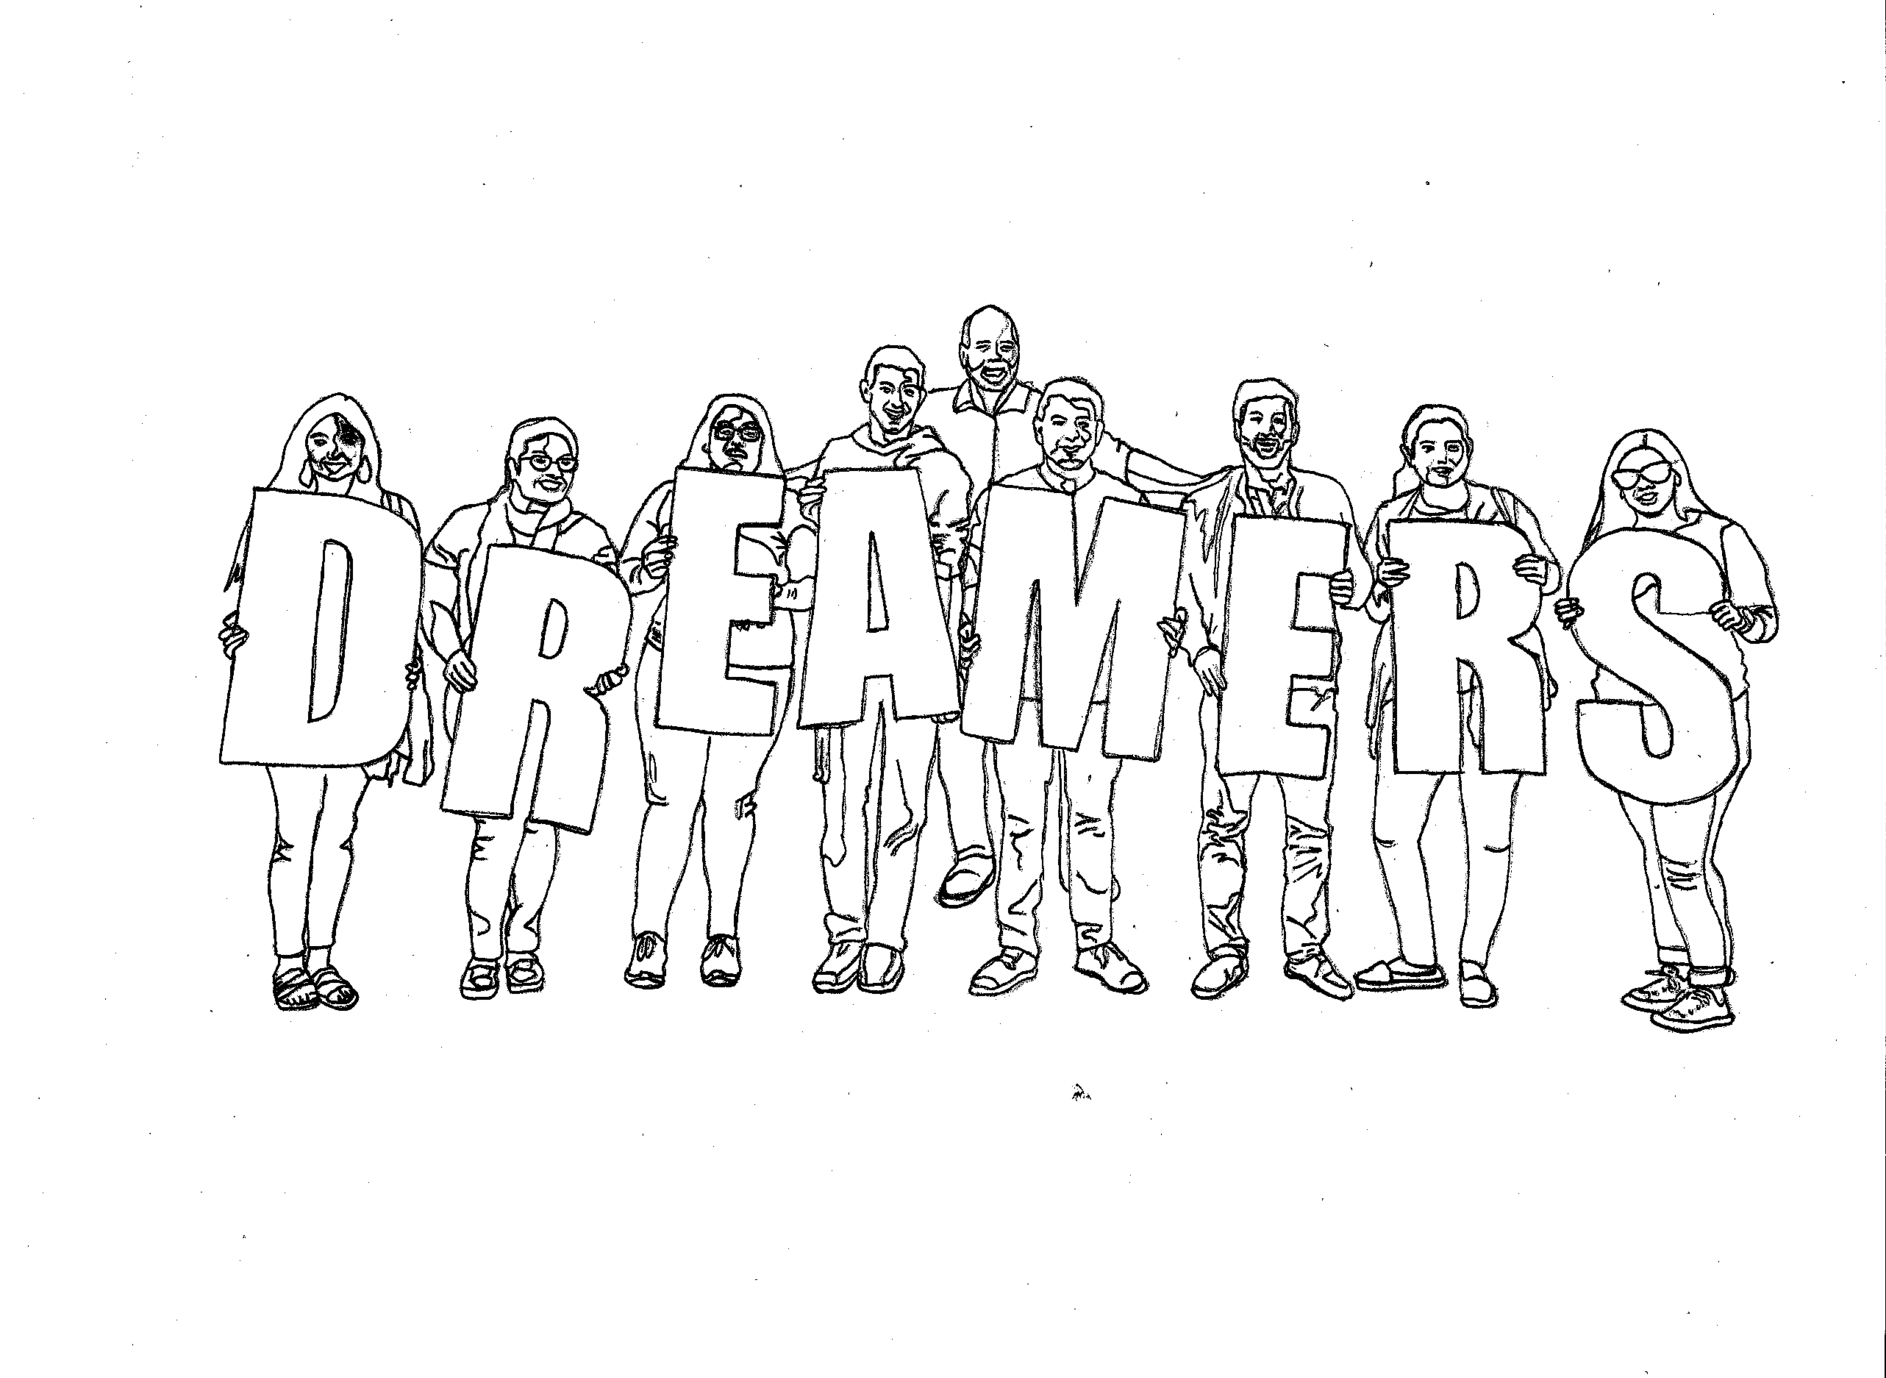 Dreamers_outline.png